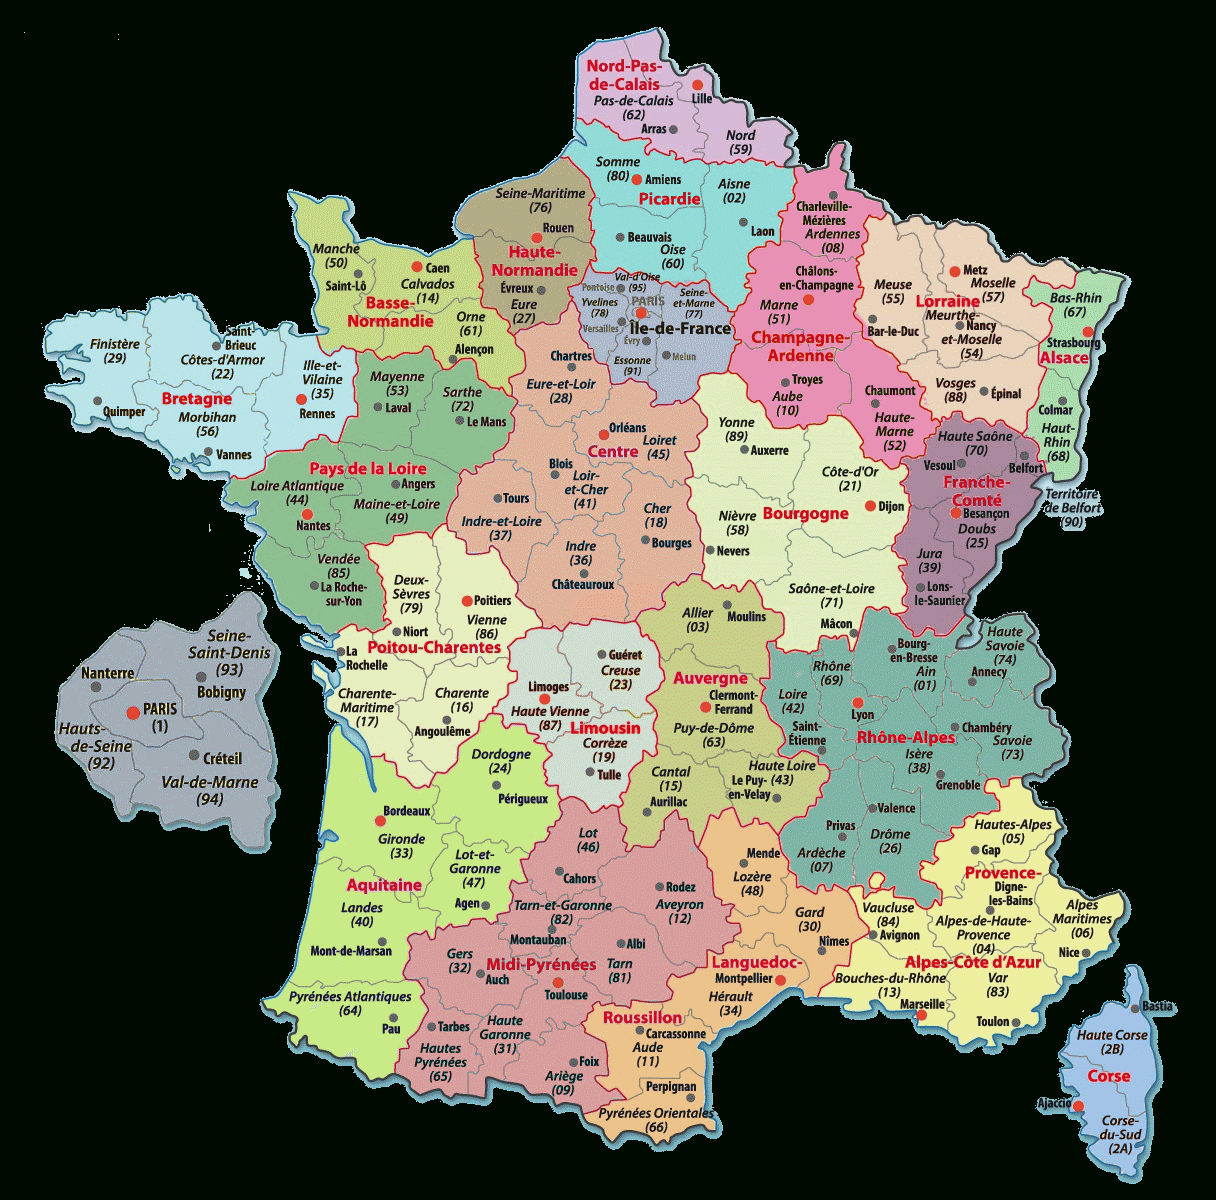 Carte De France Departements : Carte Des Départements De France destiné Le Découpage Administratif De La France